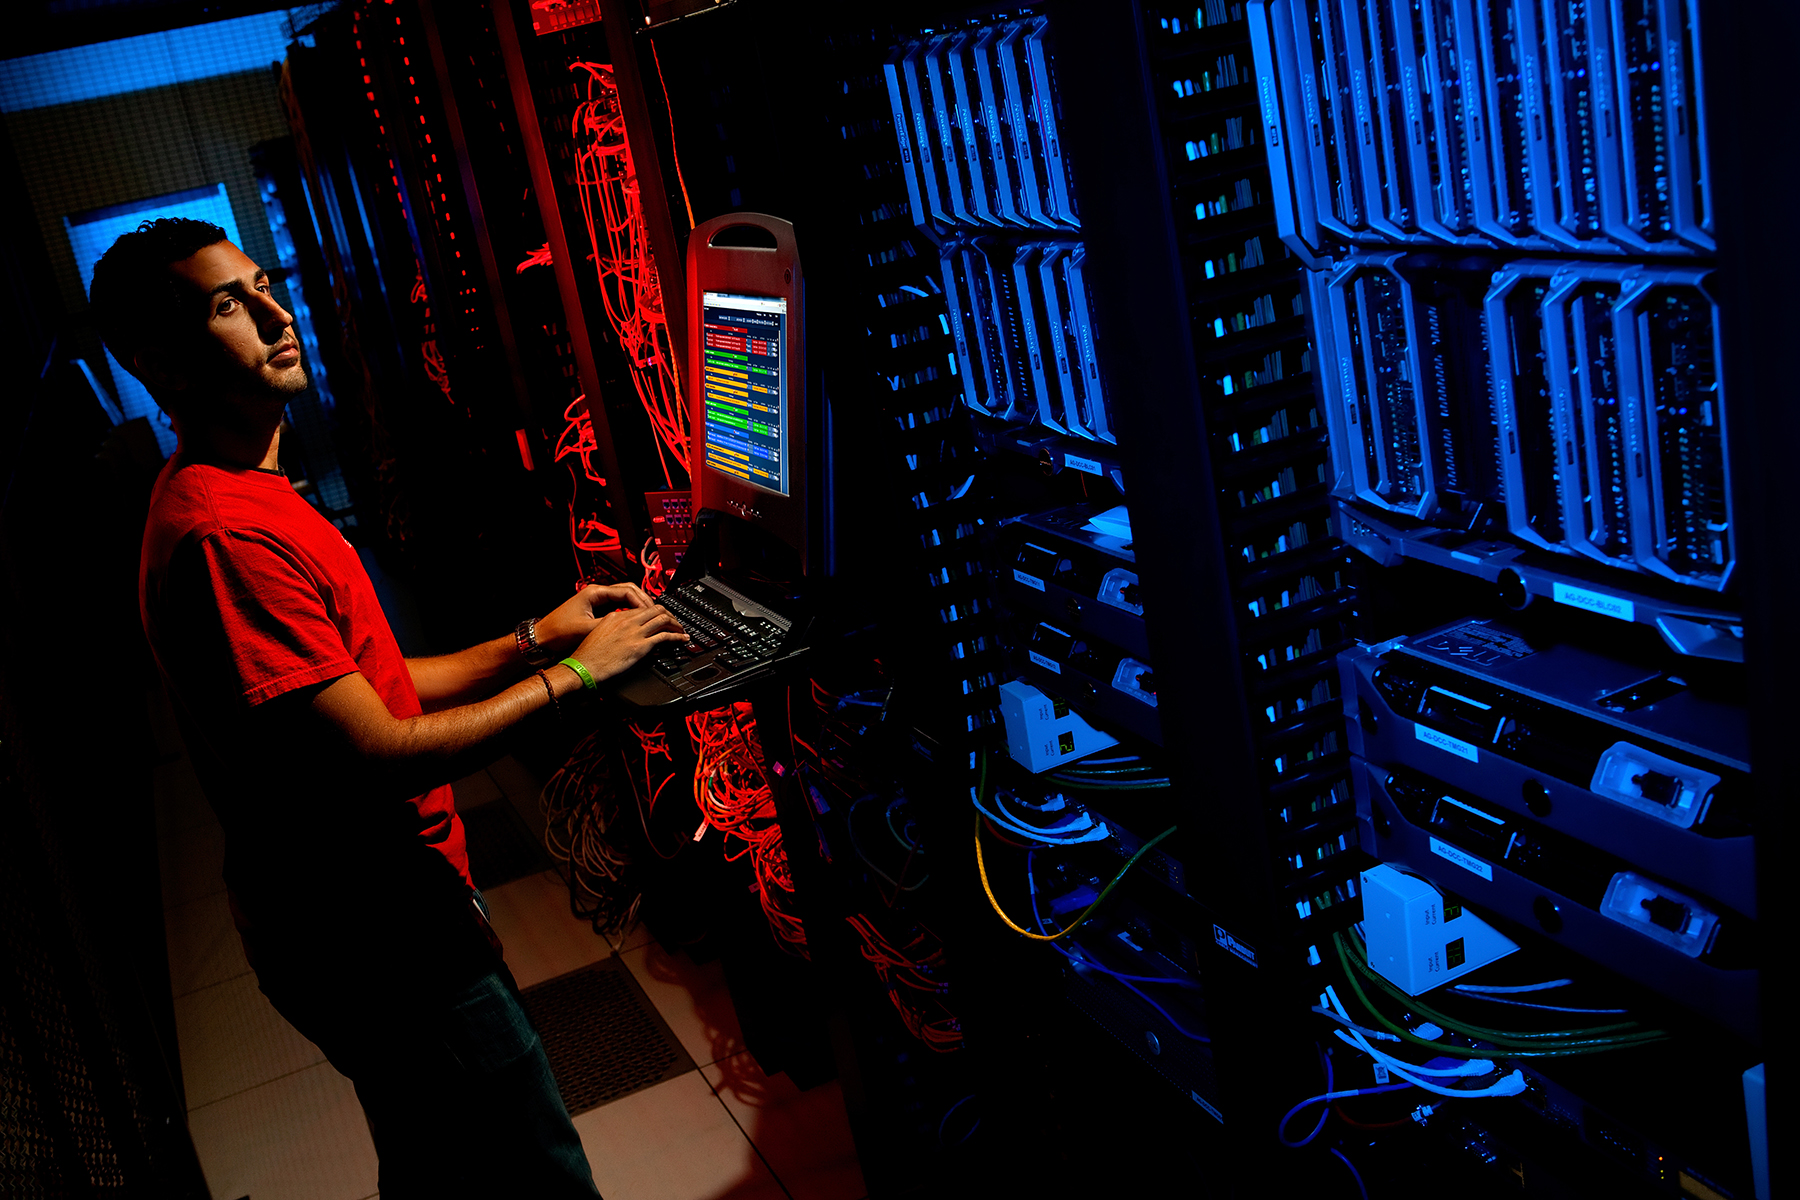 A data center employee types into a computer as he checks the calabrations of the data center's hard drives. Red and blue gelled lighting makes the bank of hard drives and connecting wires. Taking the photo from a high angle and adding blasts of blue and red highlights enhances the photo's visual interest, helps define the equipment in this otherwise dark and tiny room and expands the range and volume of images created during the shoot.